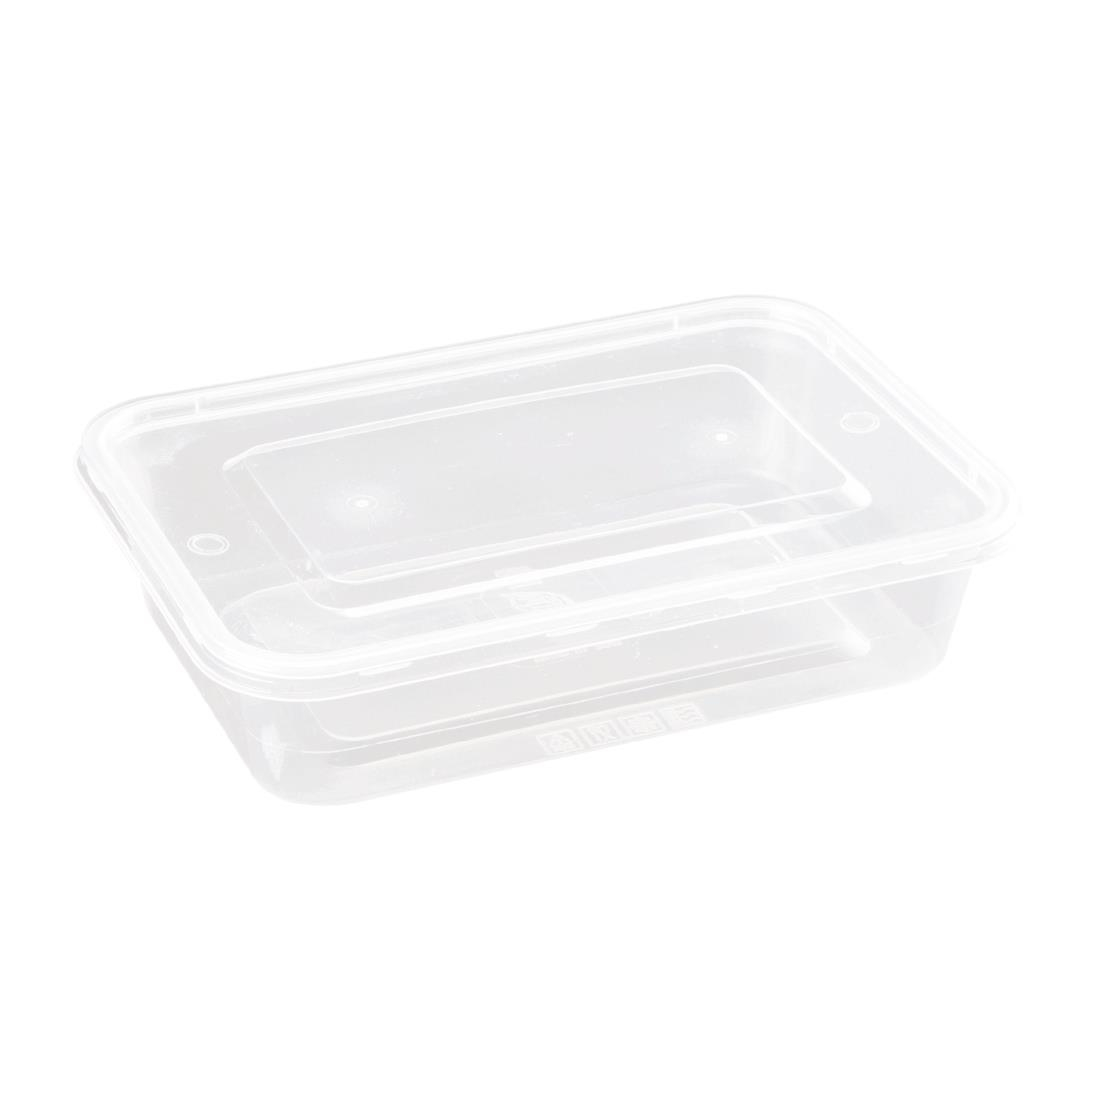 Plastic Containers With Lids Microwave Containers With Lids Bestmicrowave